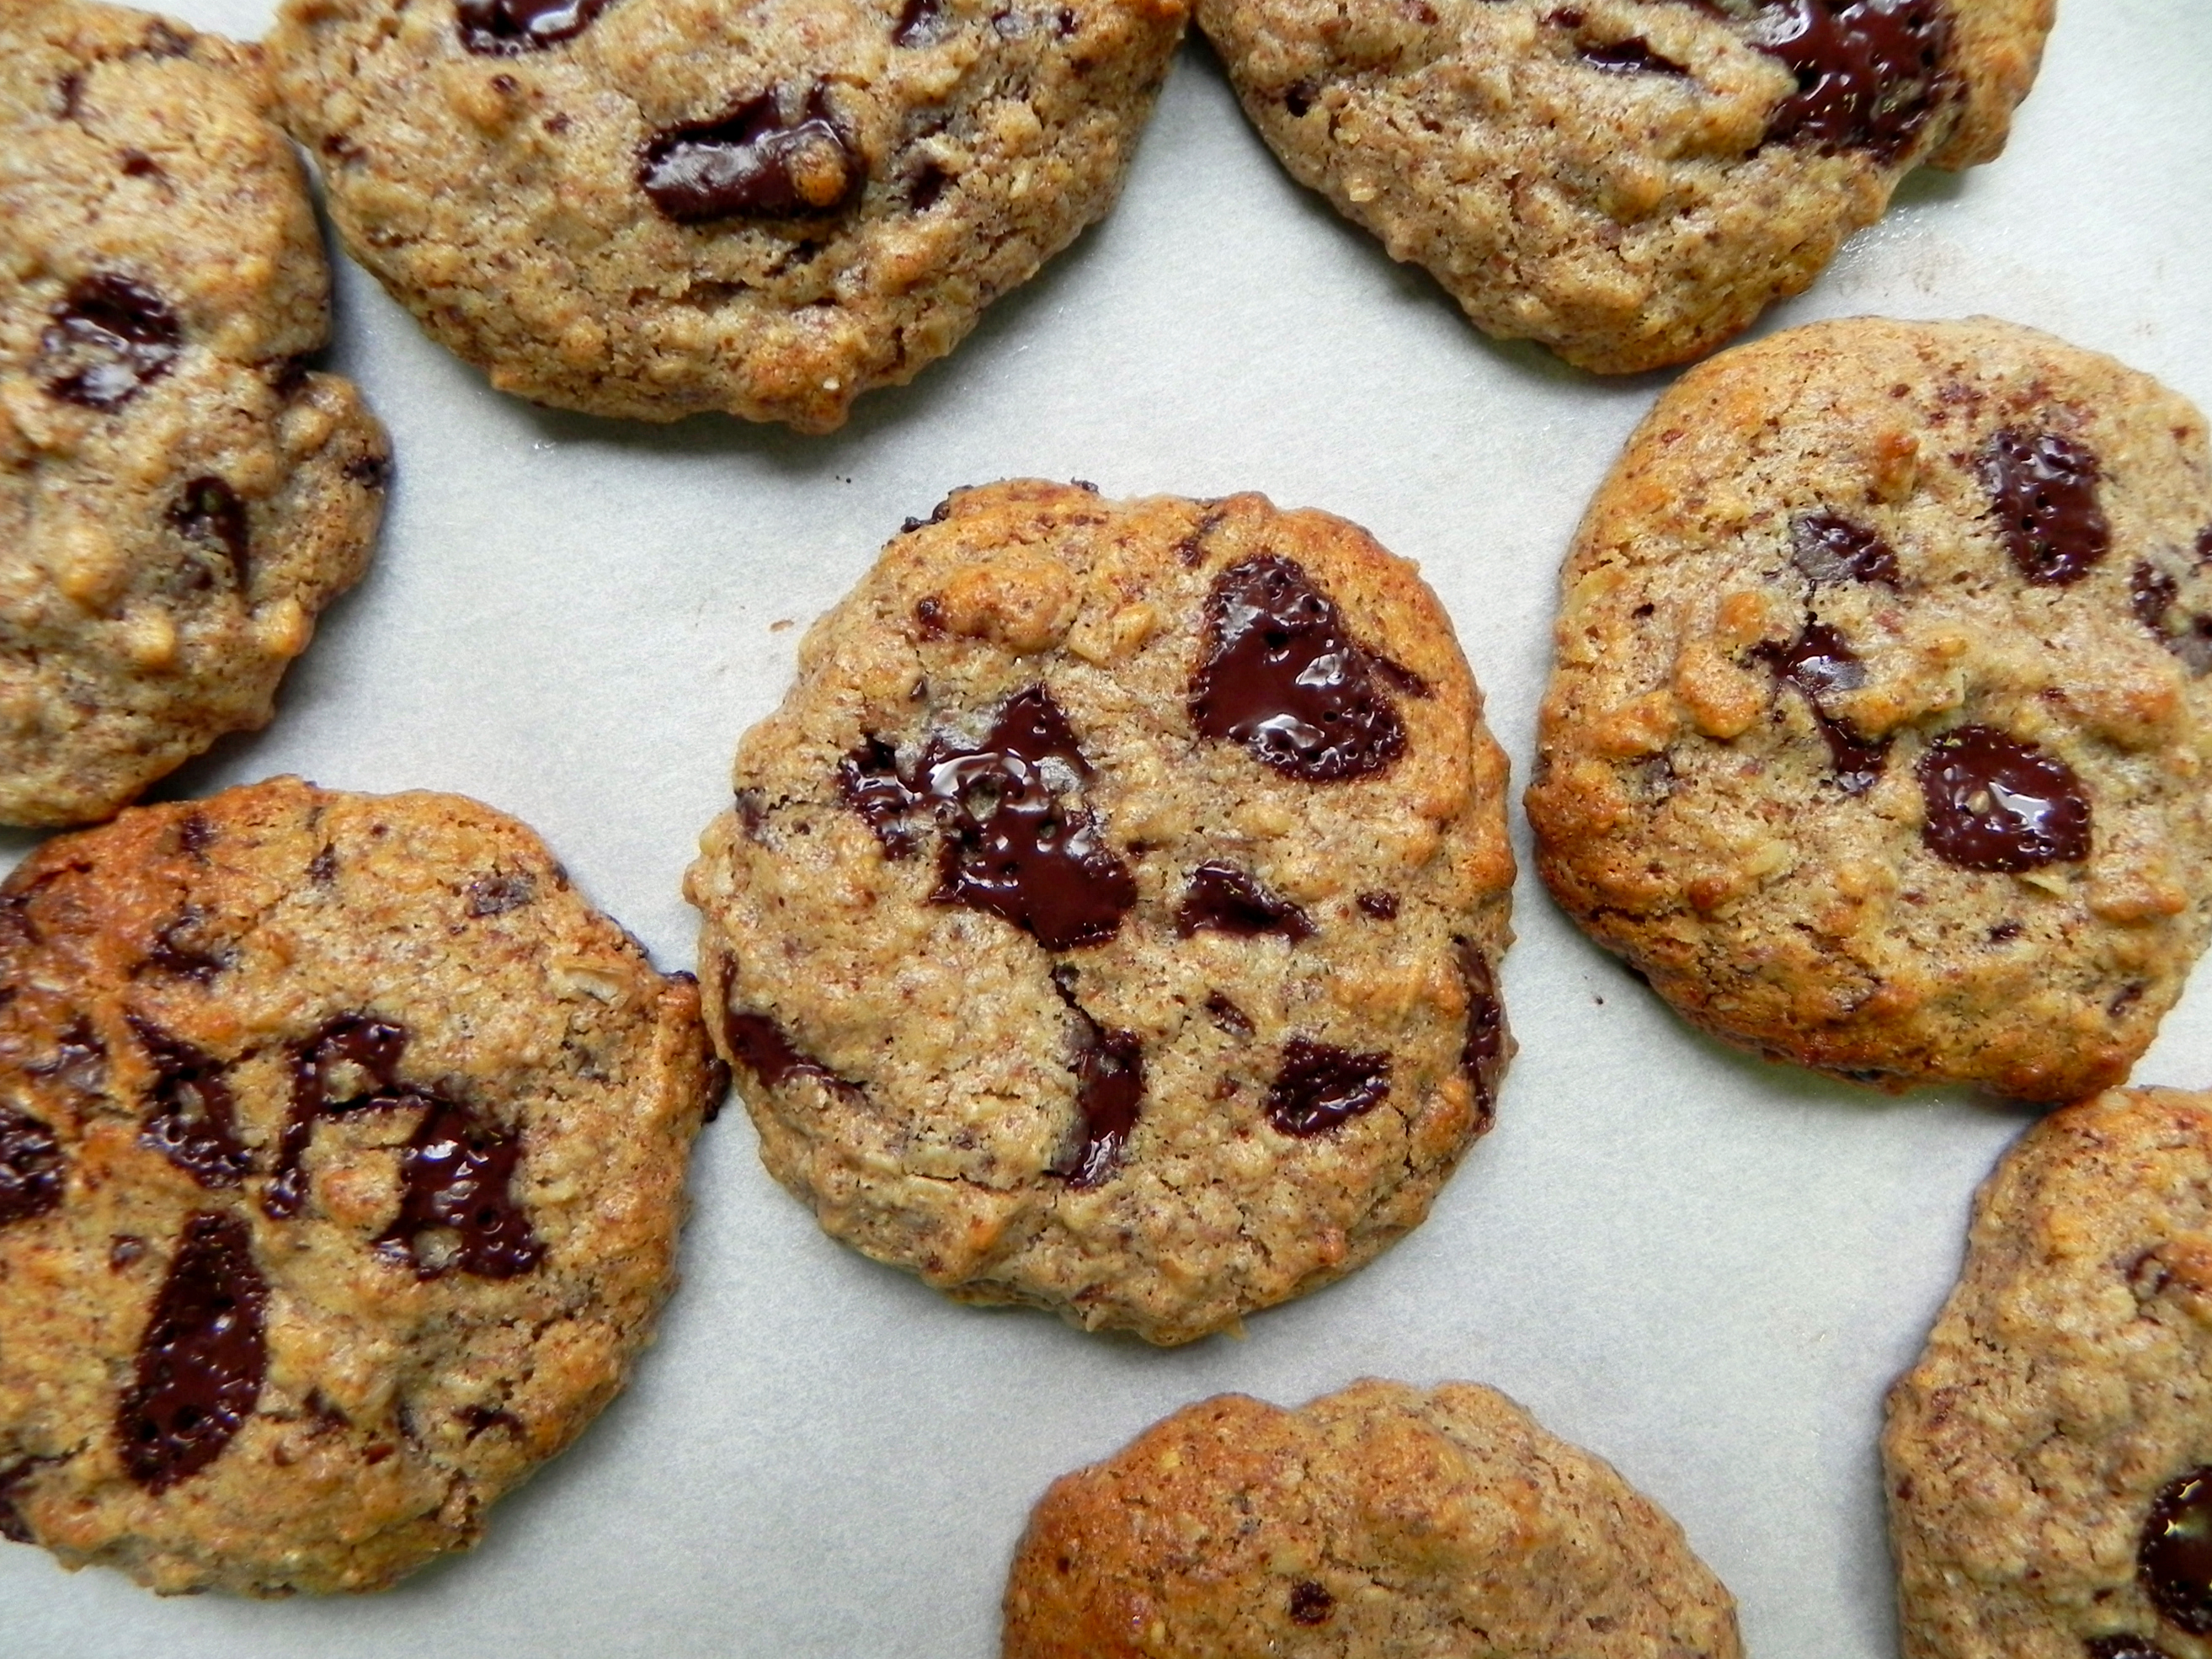 Almond-Butter-Chocolate-Chip-Cookies-@cearaskitchen-glutenfree-vegan ...